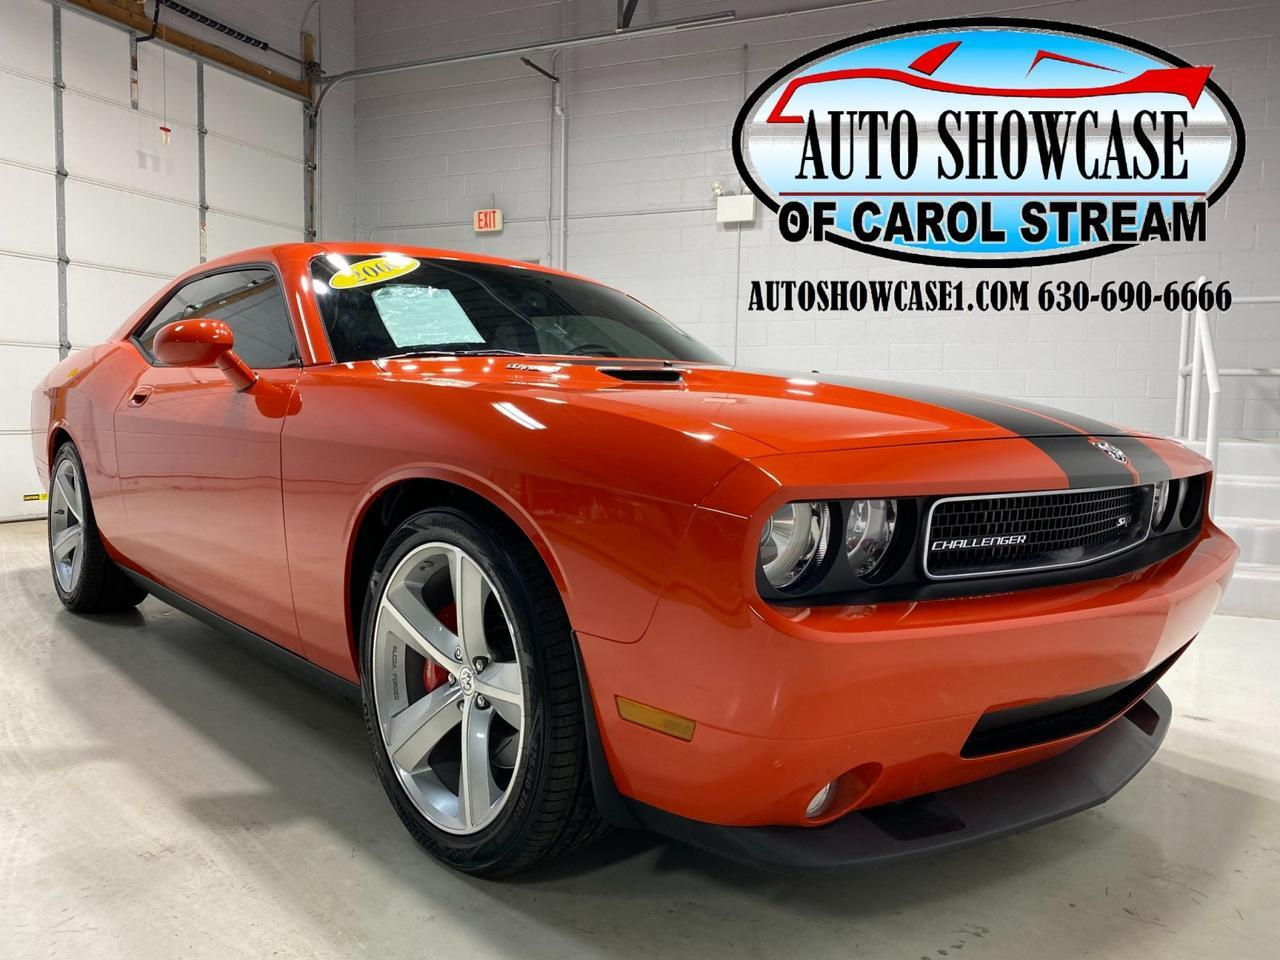 2008 Dodge Challenger SRT8 First Edition #5181/6400 Procharged Carol Stream IL